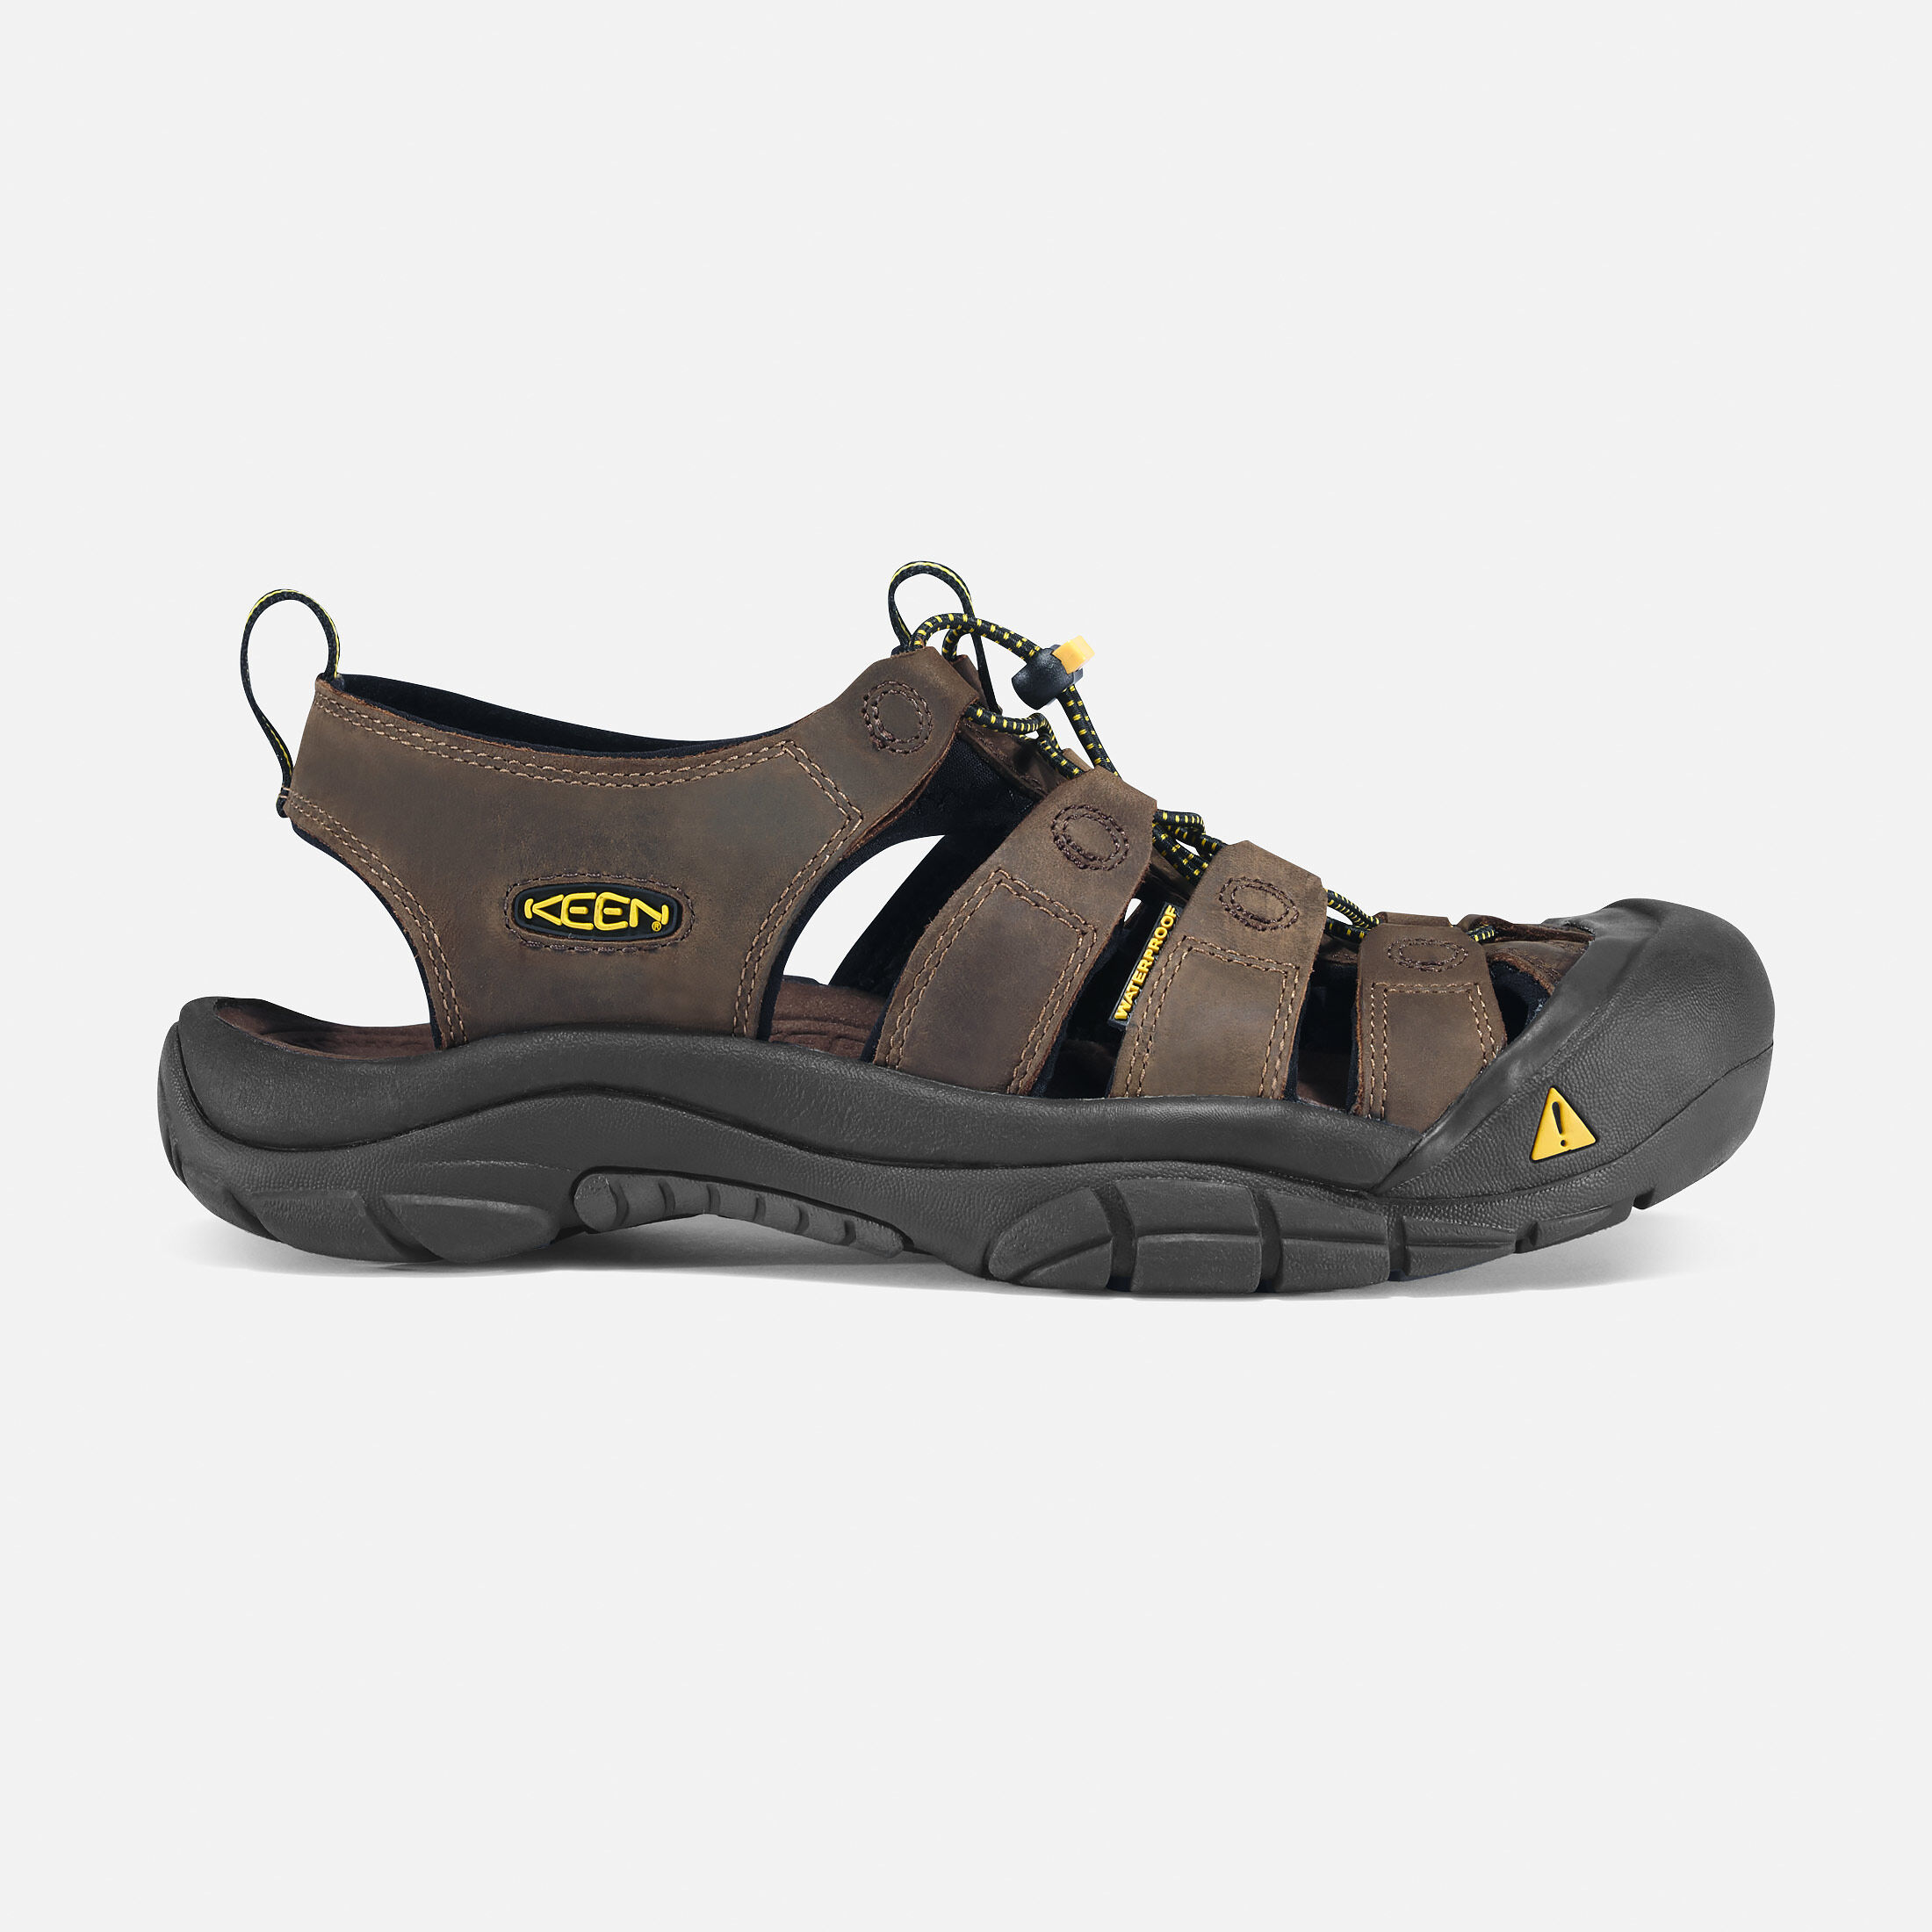 Back To Search Resultsshoes Men's Shoes New Fashion Fotwear Mens Outdoor Sandals Casual Shoes Men Lightweight Durable Sandals Reliable Traction Both In And Out Of Water Multi-lug